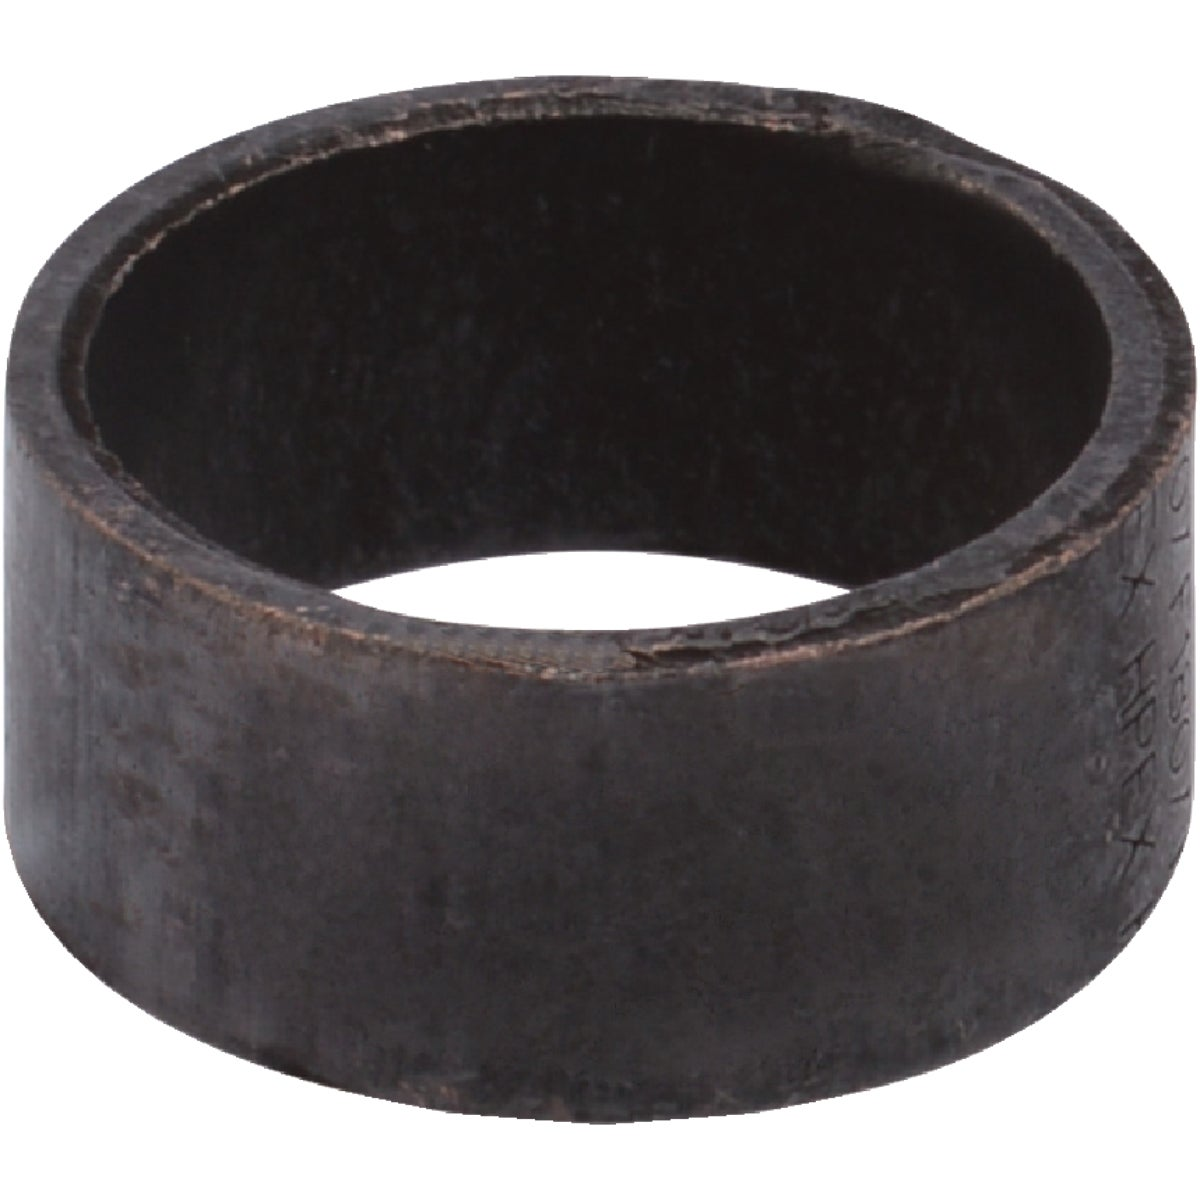 "100PK 1/2"" CRIMP RINGS"